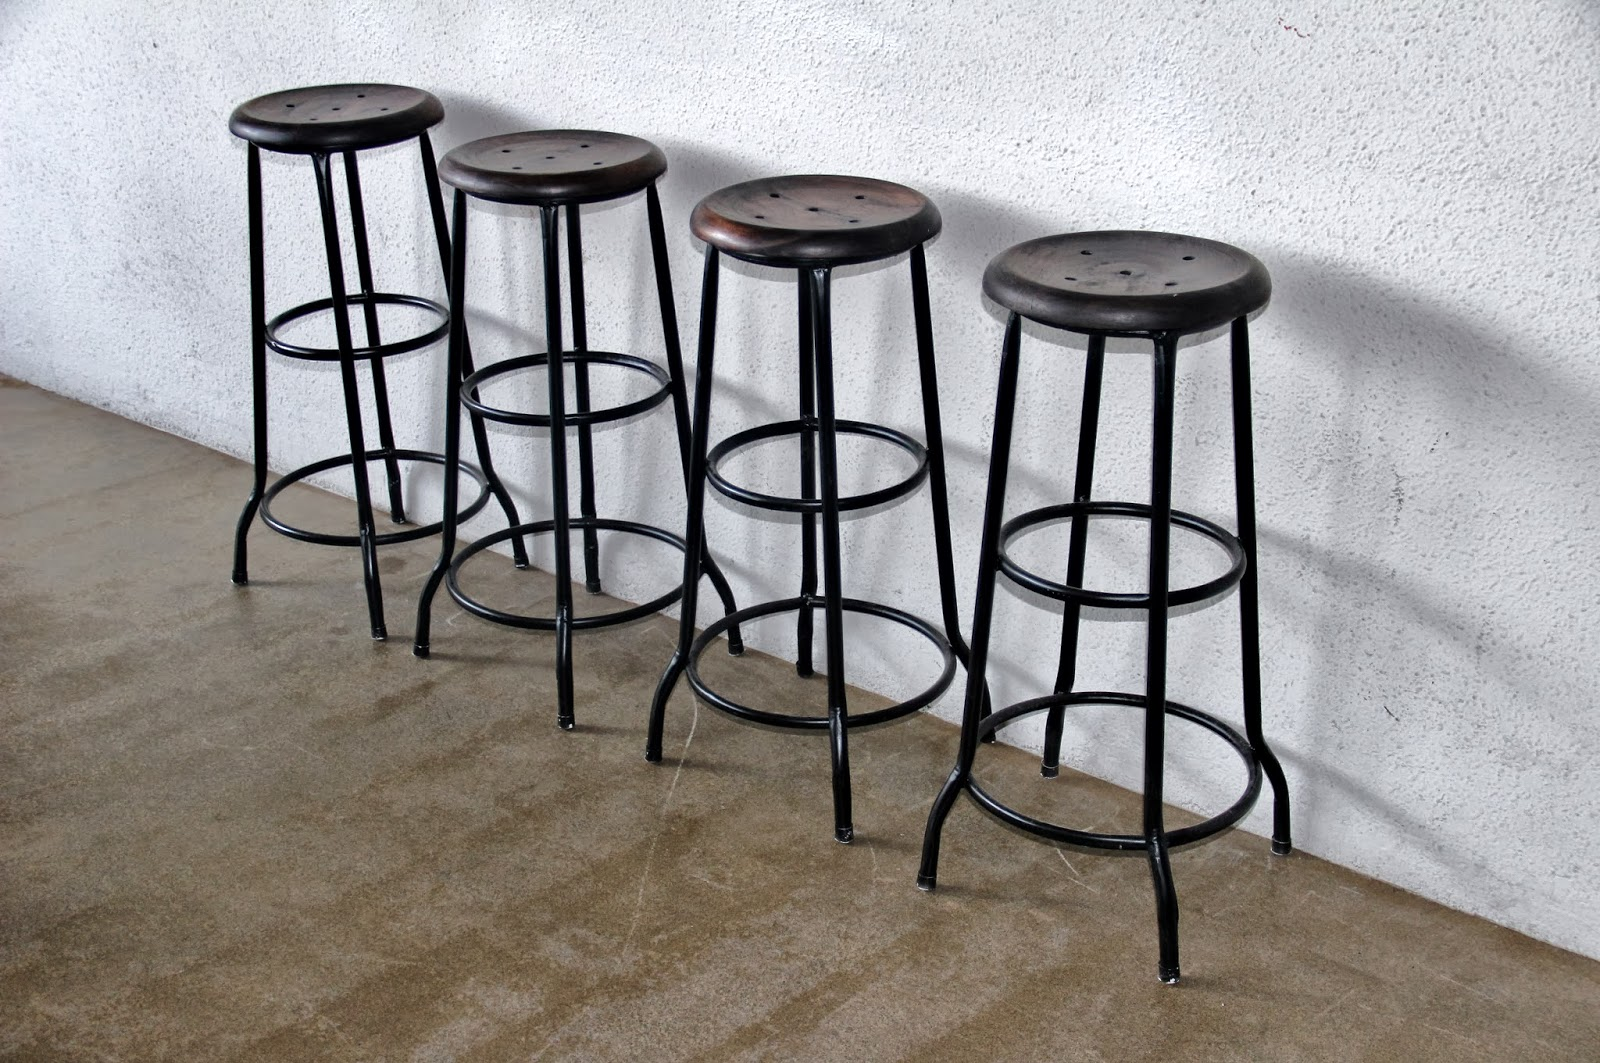 Second Charm Furniture Stools Barstools Bar Chairs And